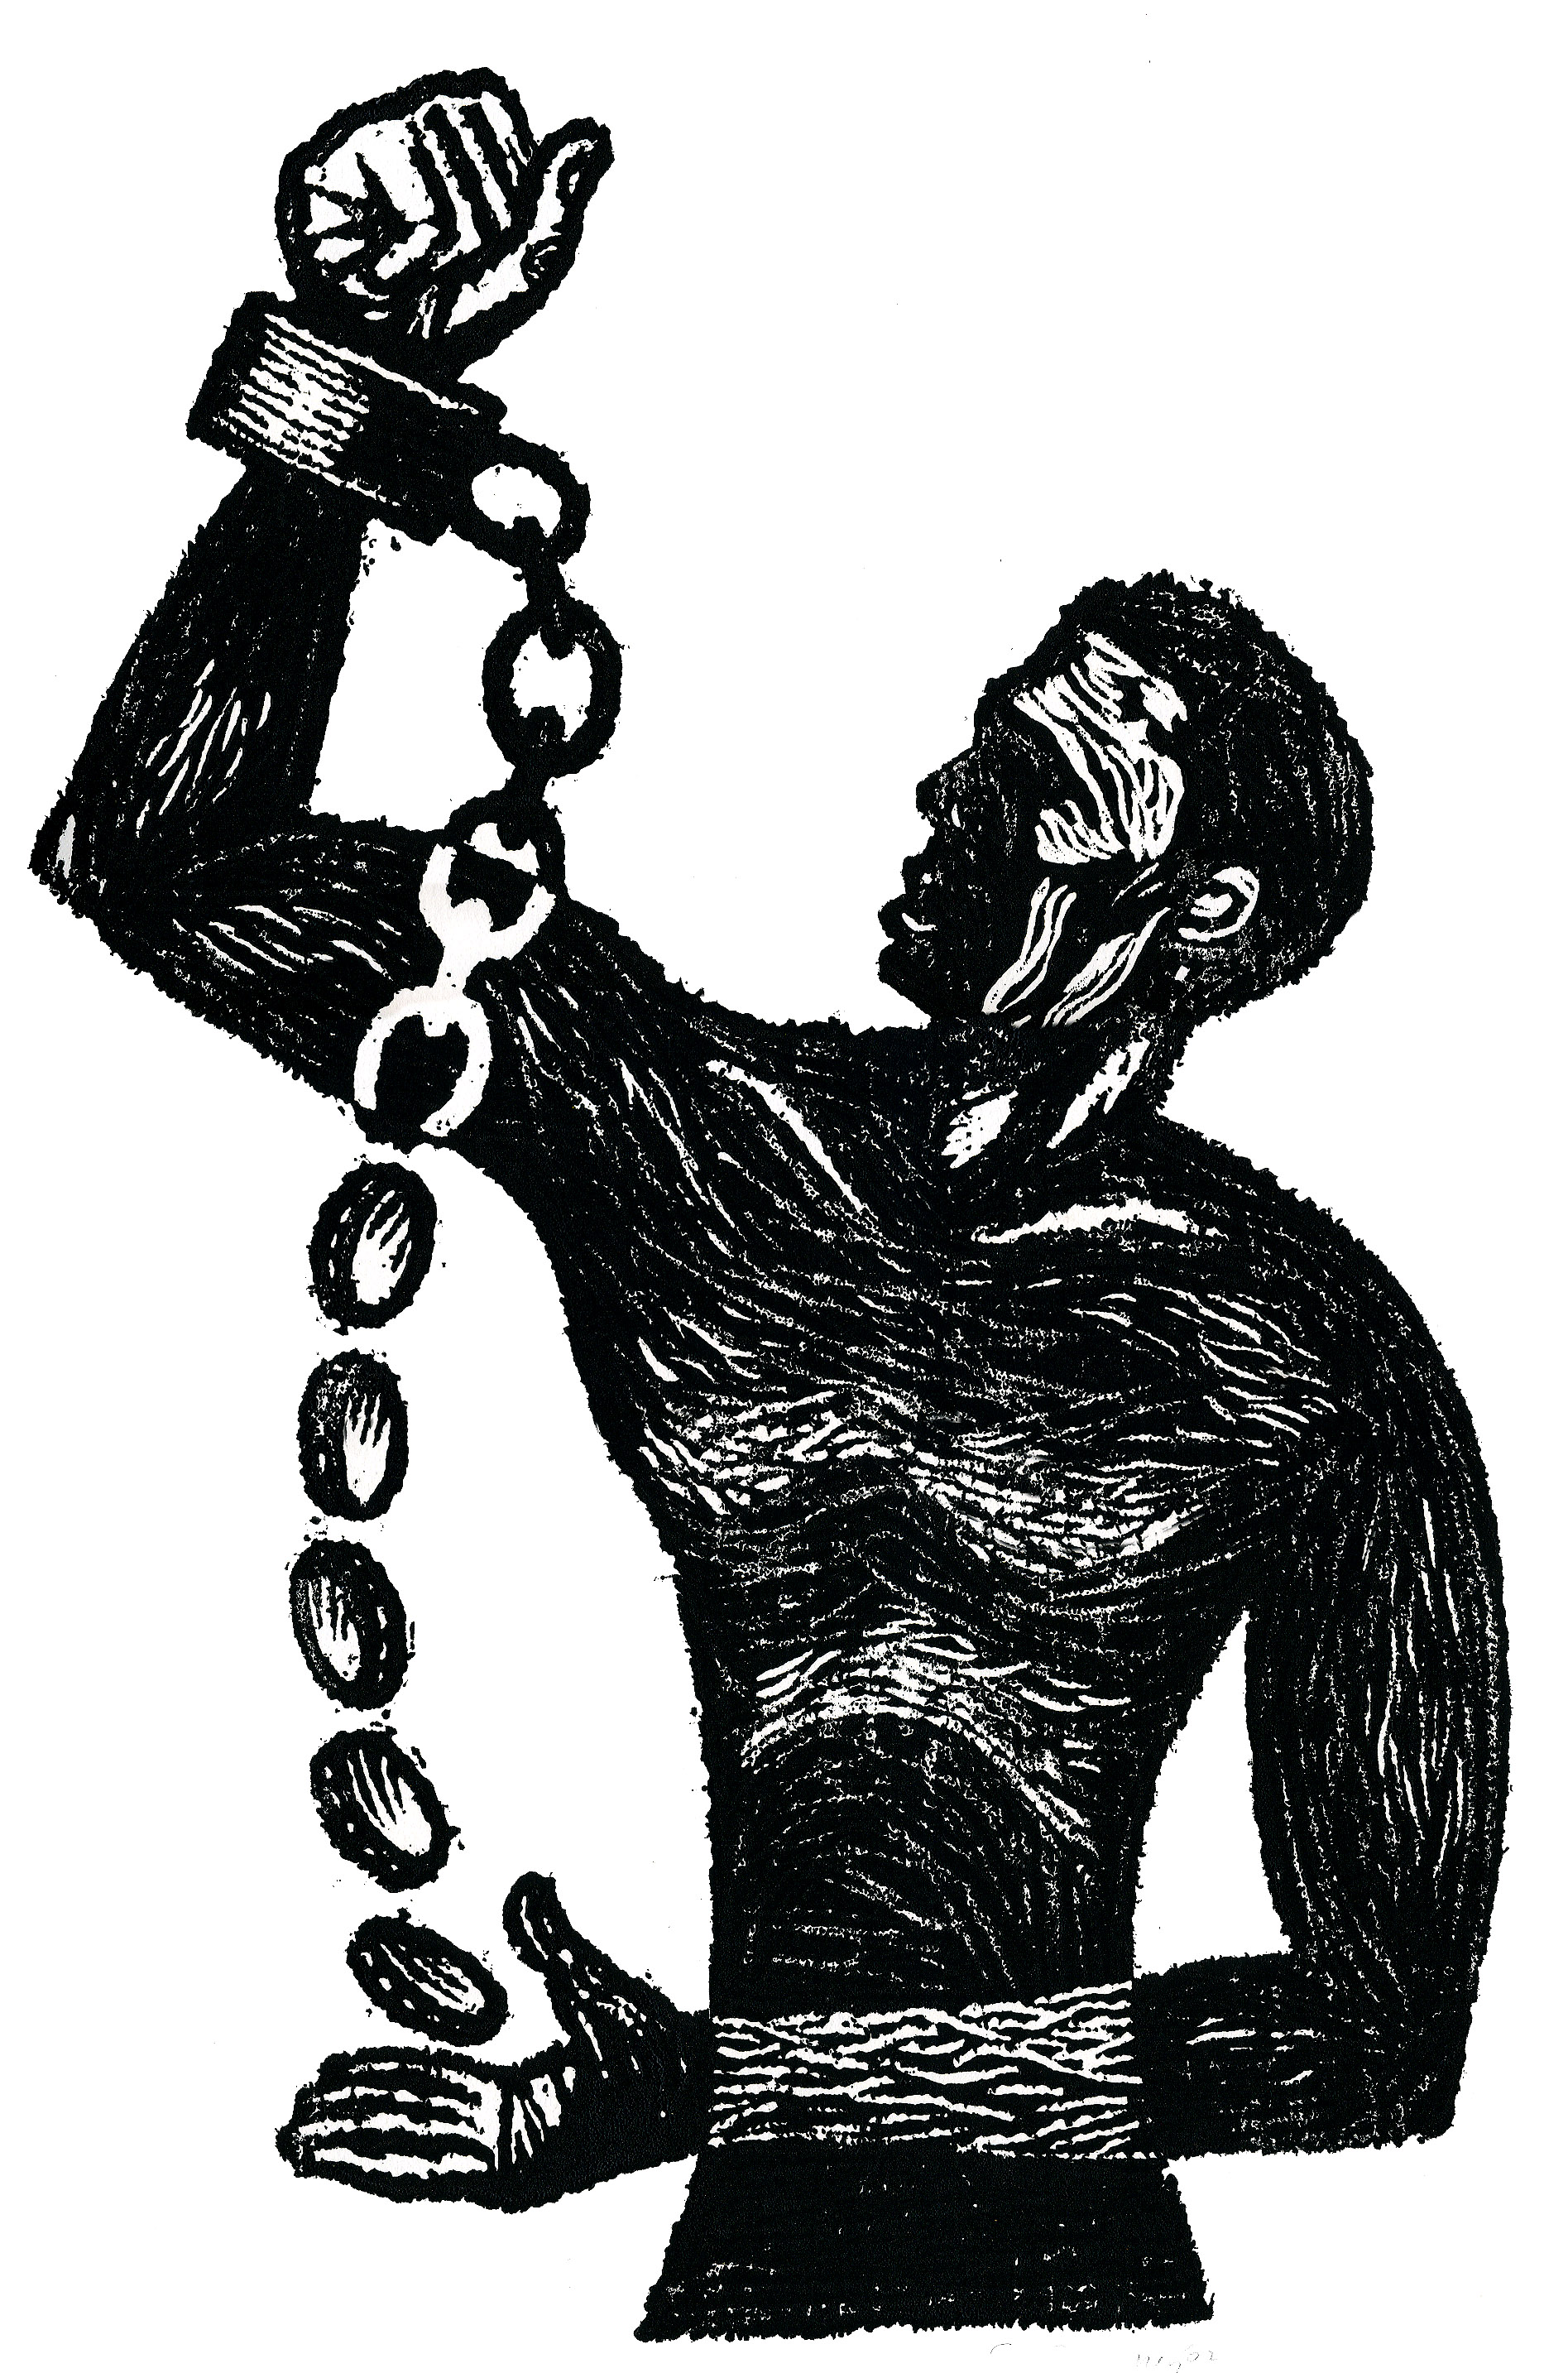 reparations and other right